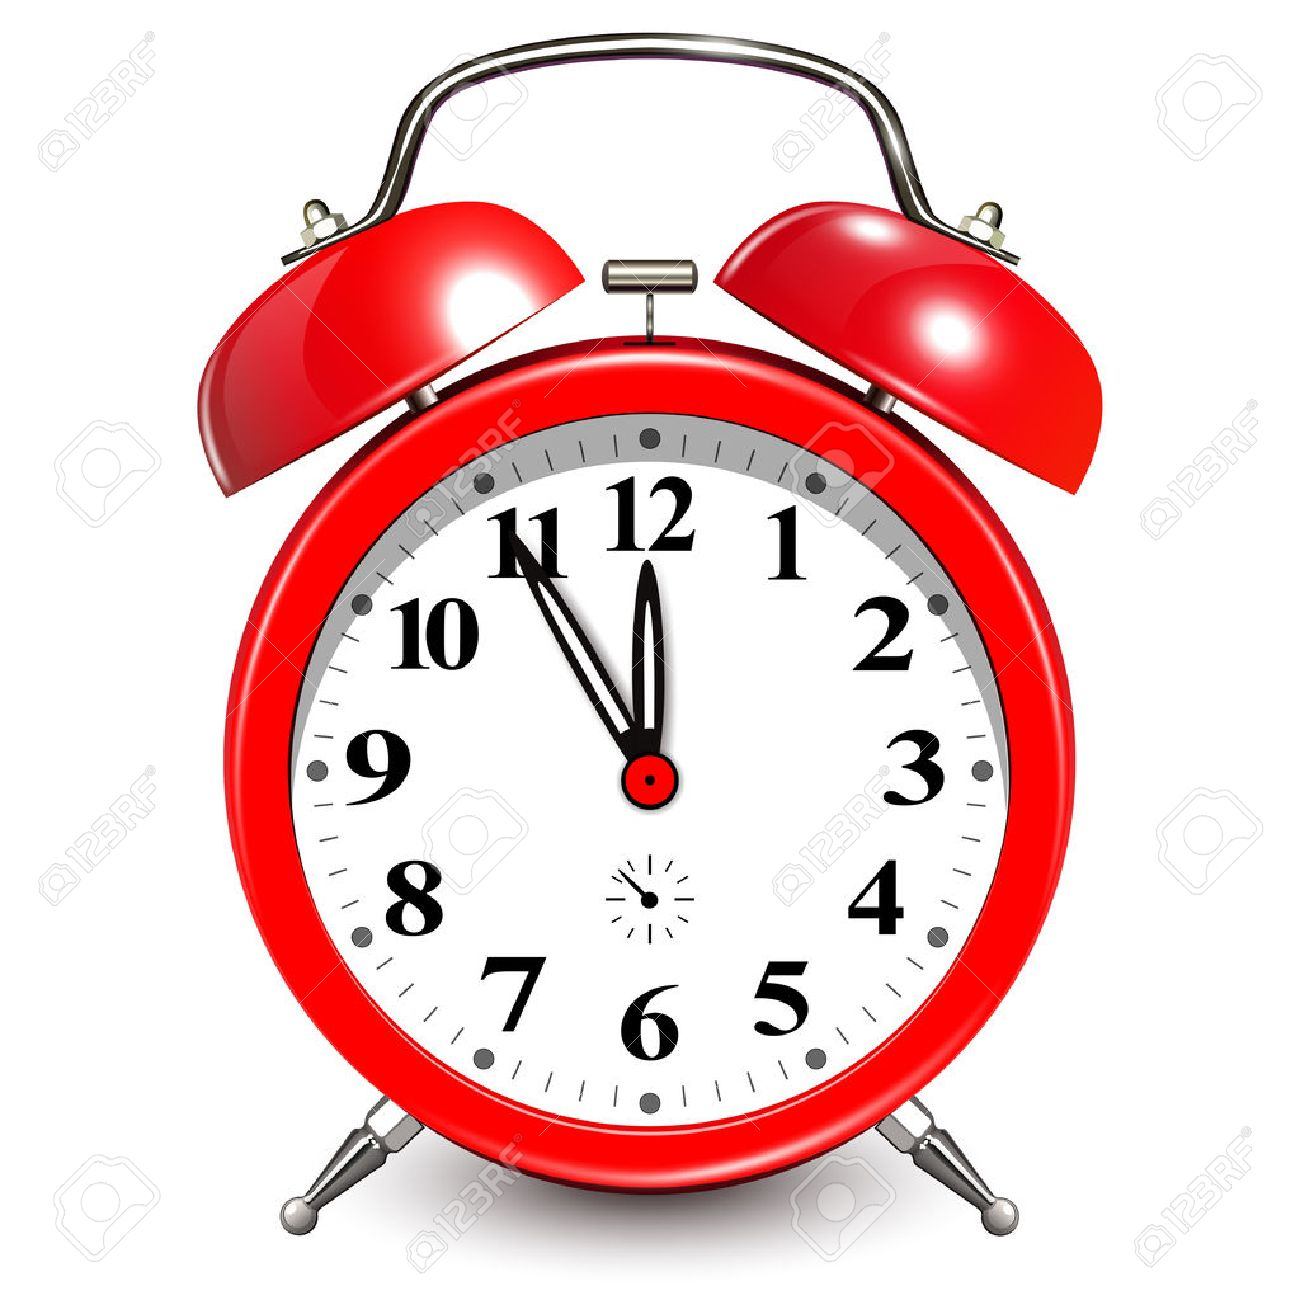 alarm clock with five minutes to twelve oclock stock vector 49361620